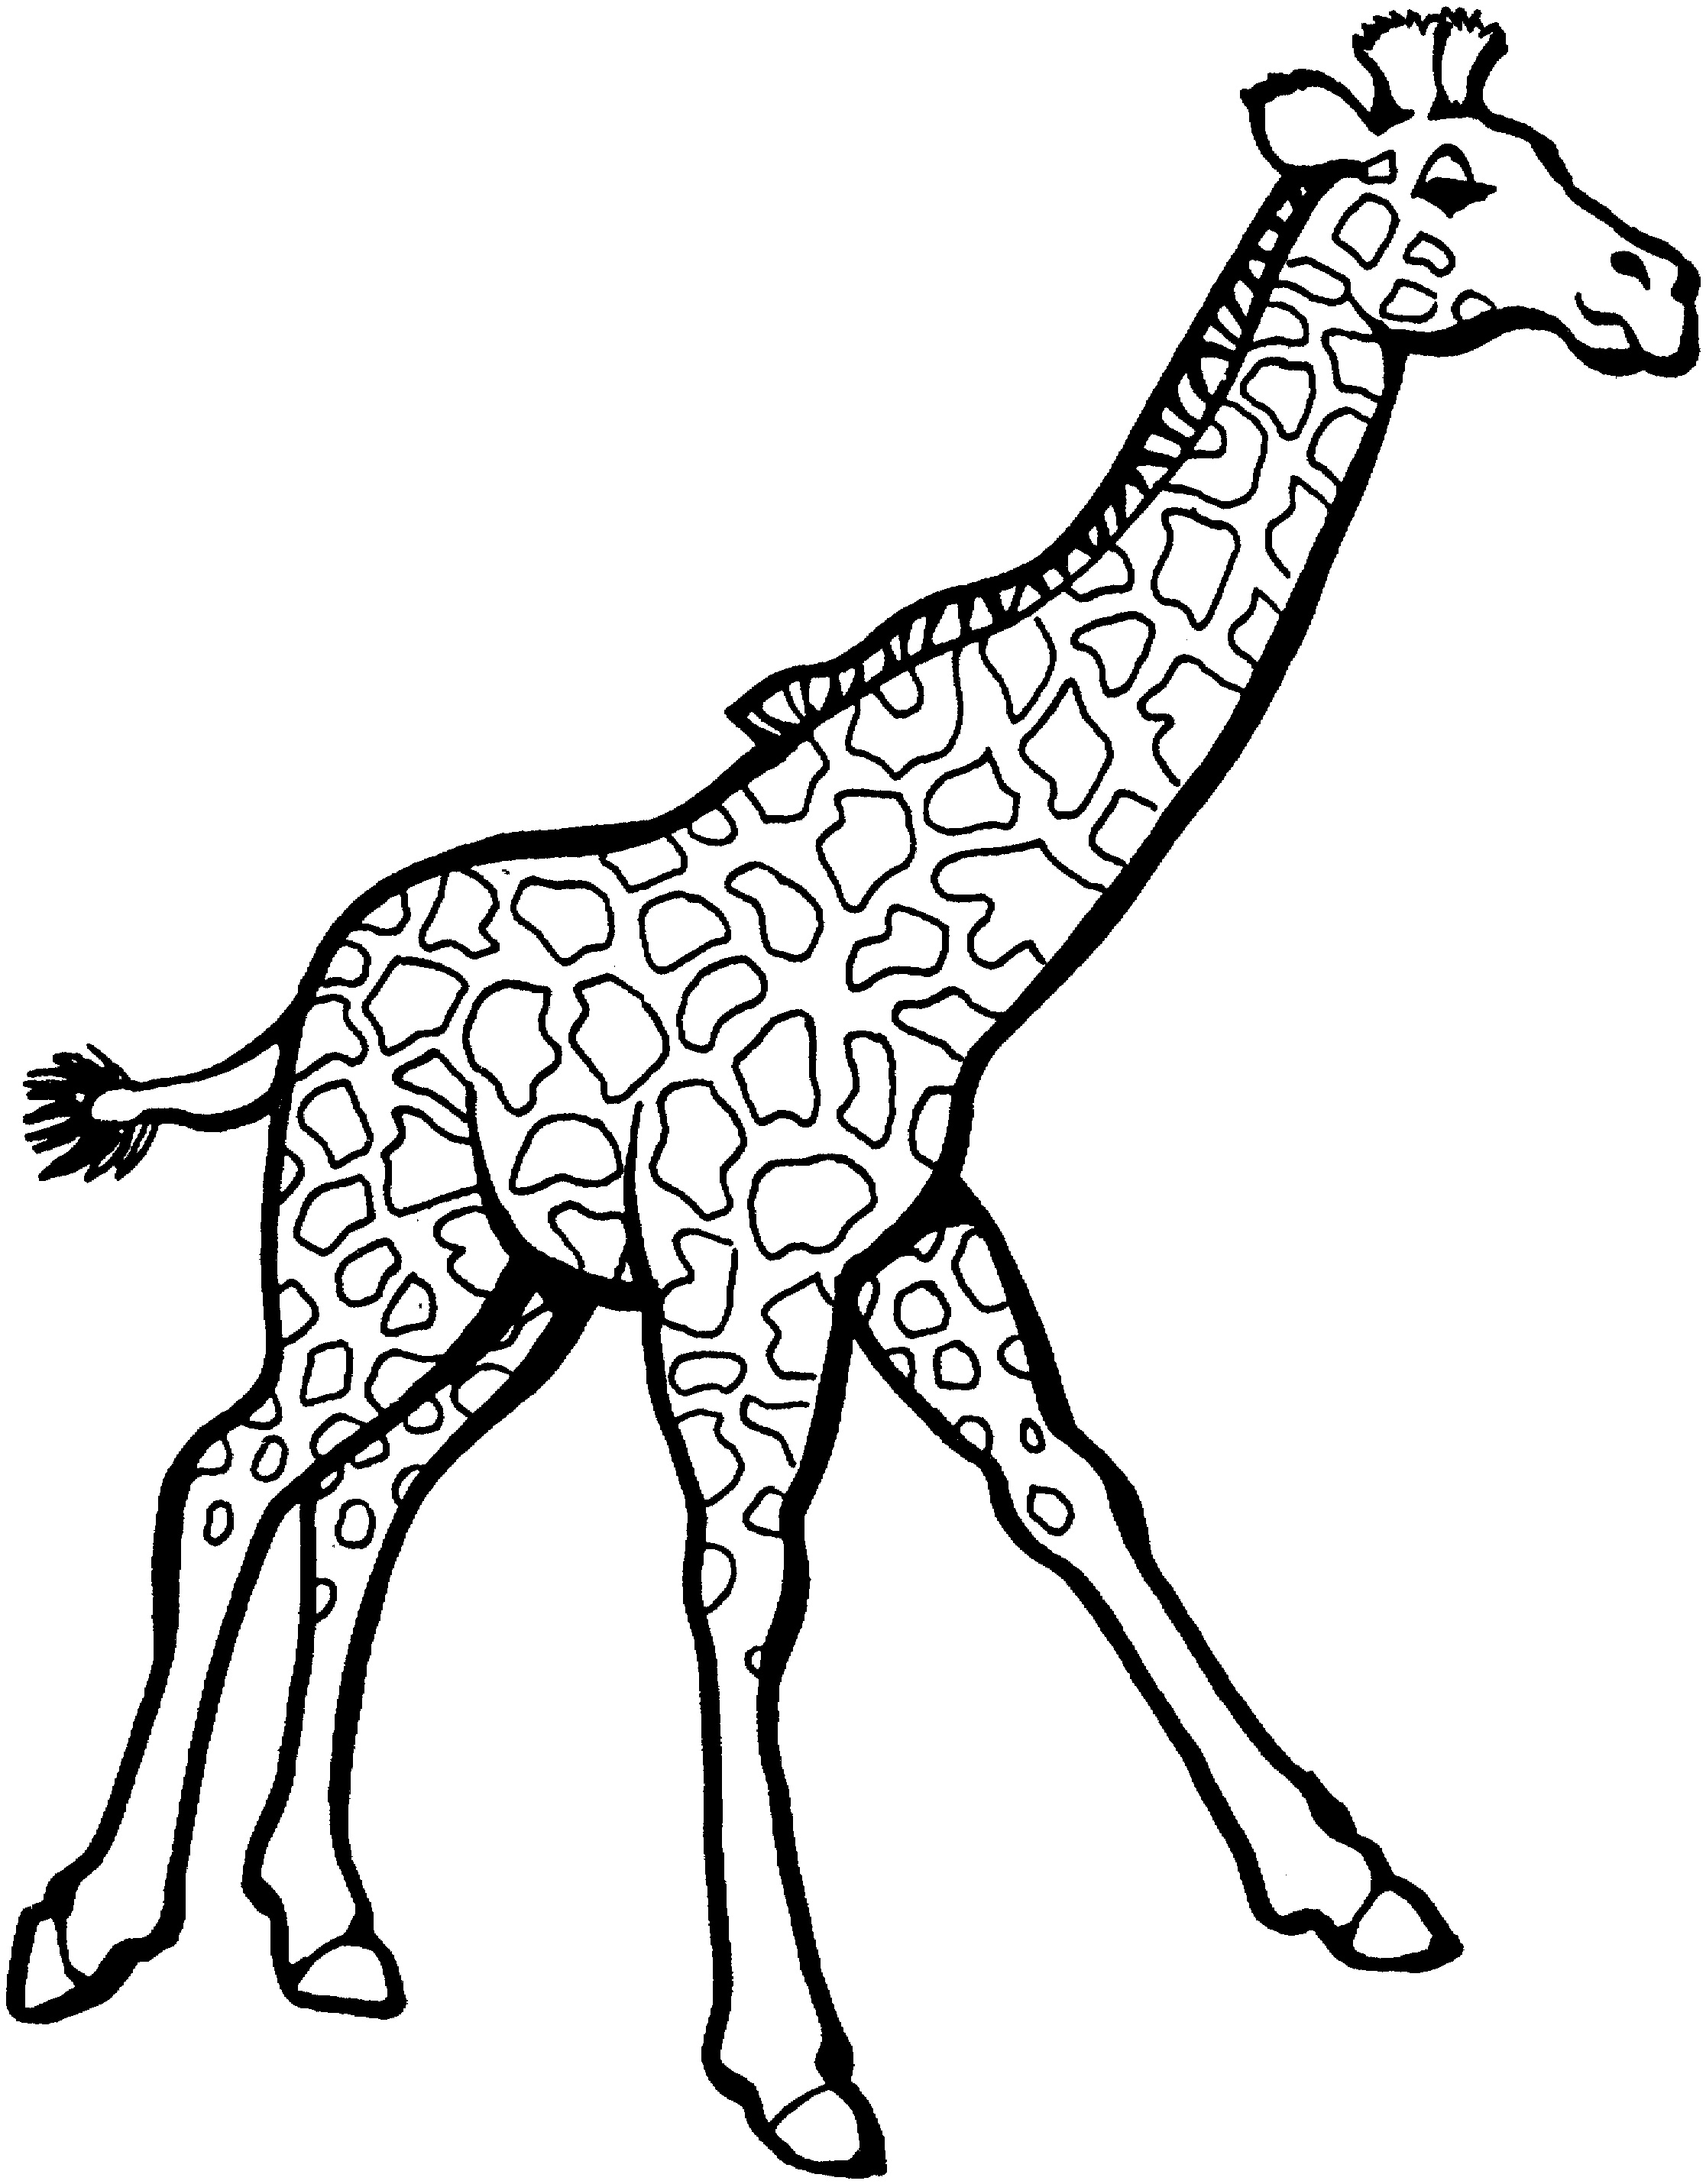 free giraffe coloring pages - photo#3